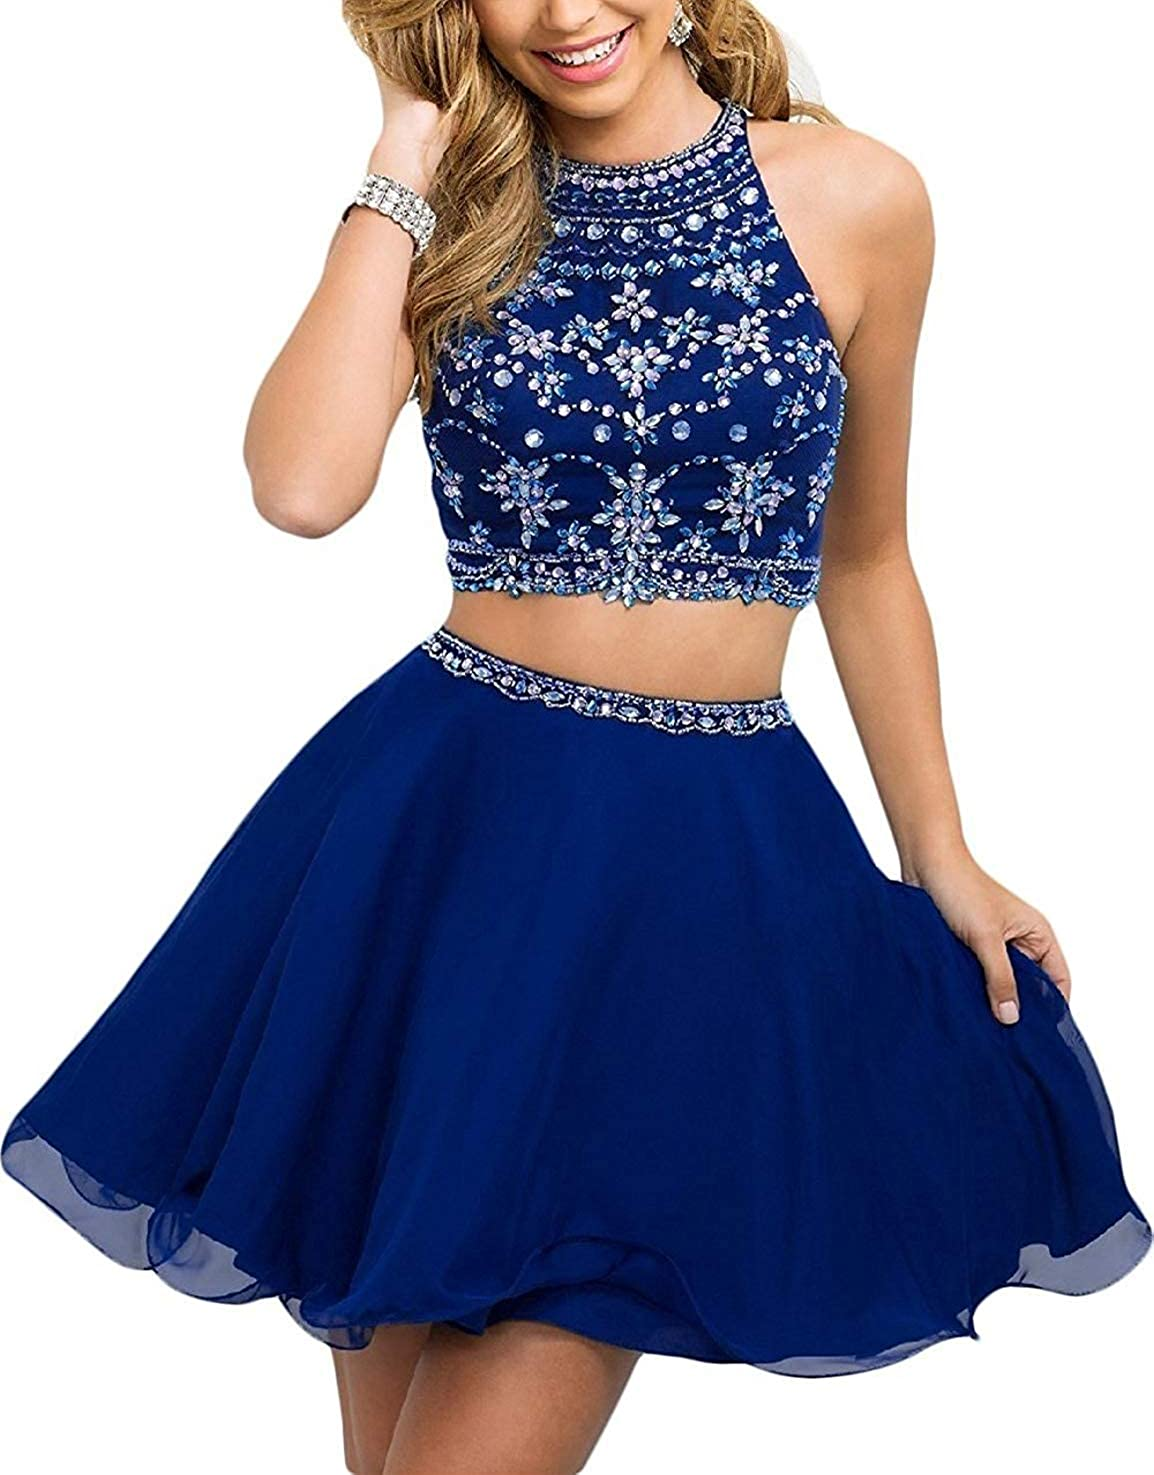 WanFubridal Women's Halter Beading Homecoming Dresses Two Piece Pleated Cocktail Prom Gowns Short